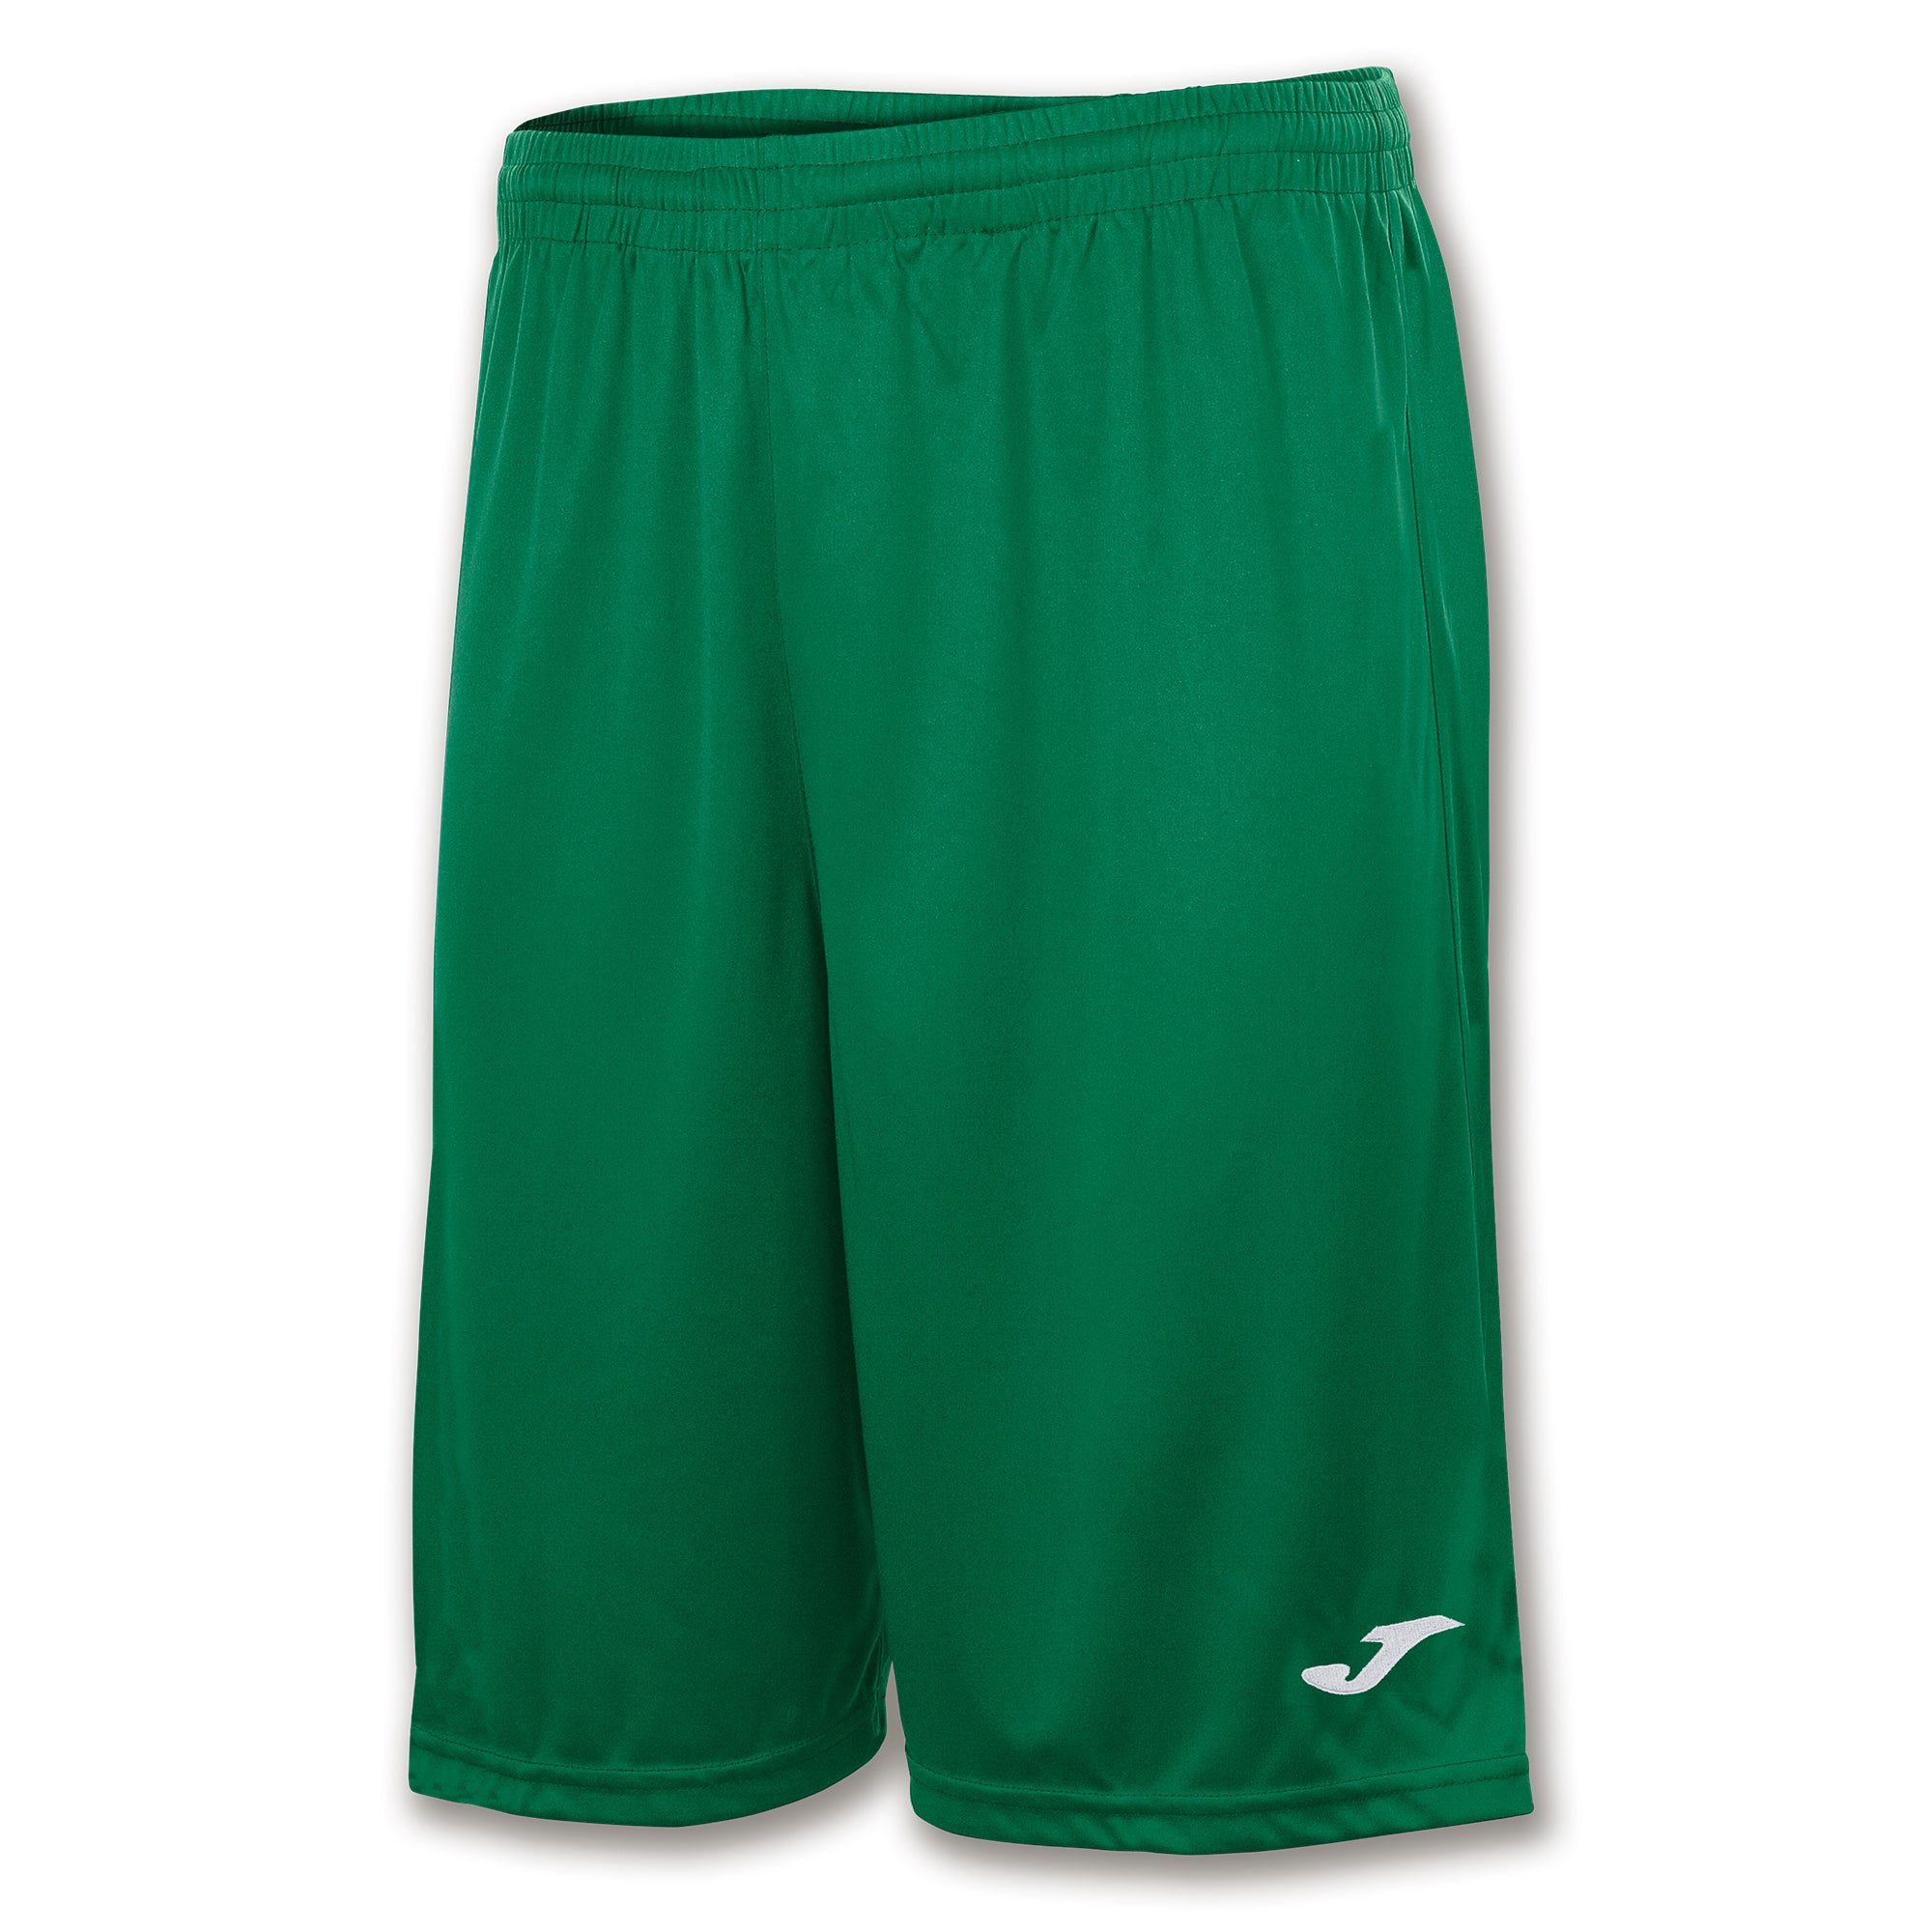 Teamwear - Joma Nobel Long Shorts - Green - JO-101648-450